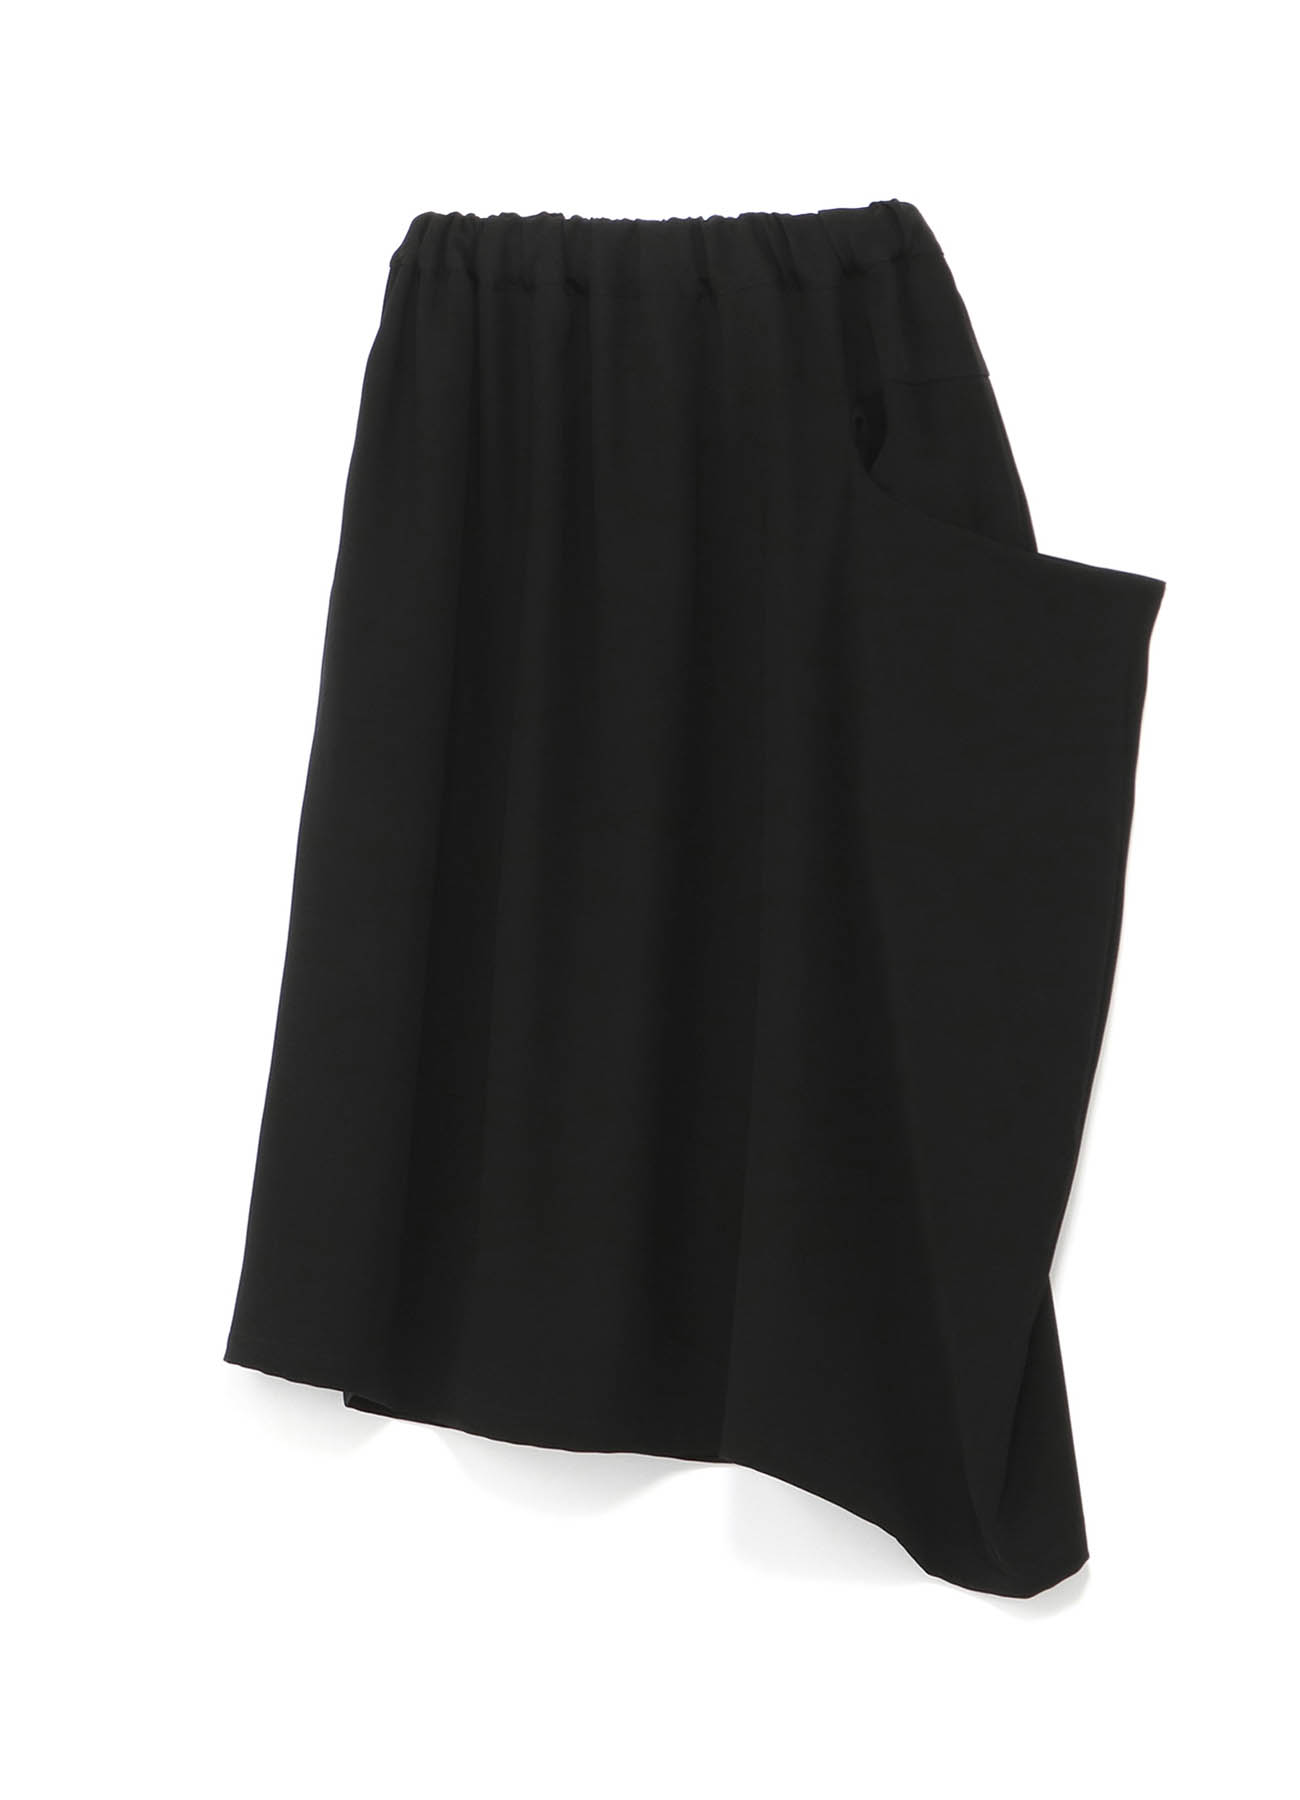 Double Satin Drop Pocket Skirt